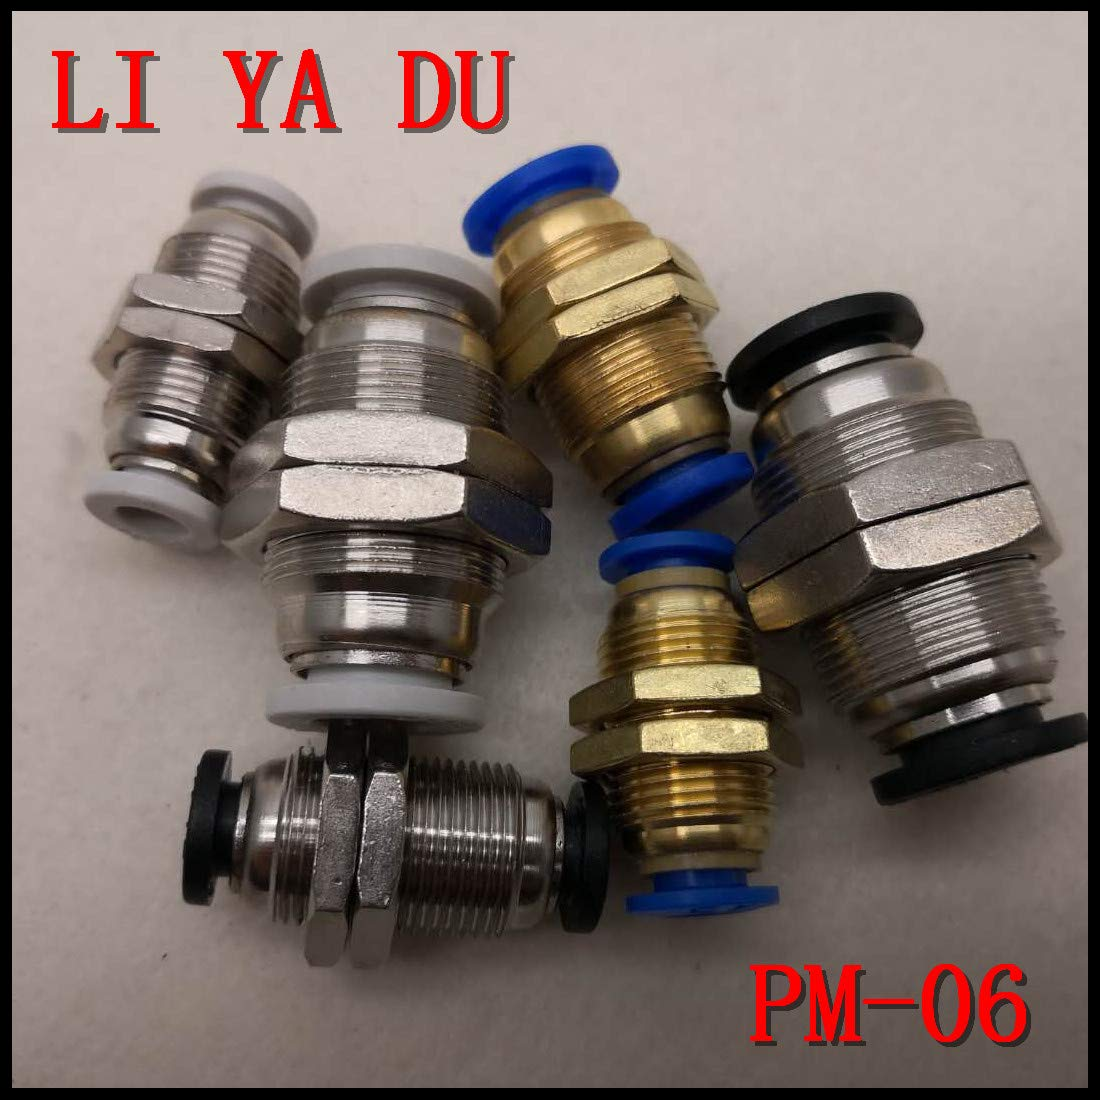 Color: White Fevas 10pcs//lot PM-06 Pneumatic Fittings PM Bulkhead Quick Connector tracheal Quick Connector Bulkhead Straight PM6